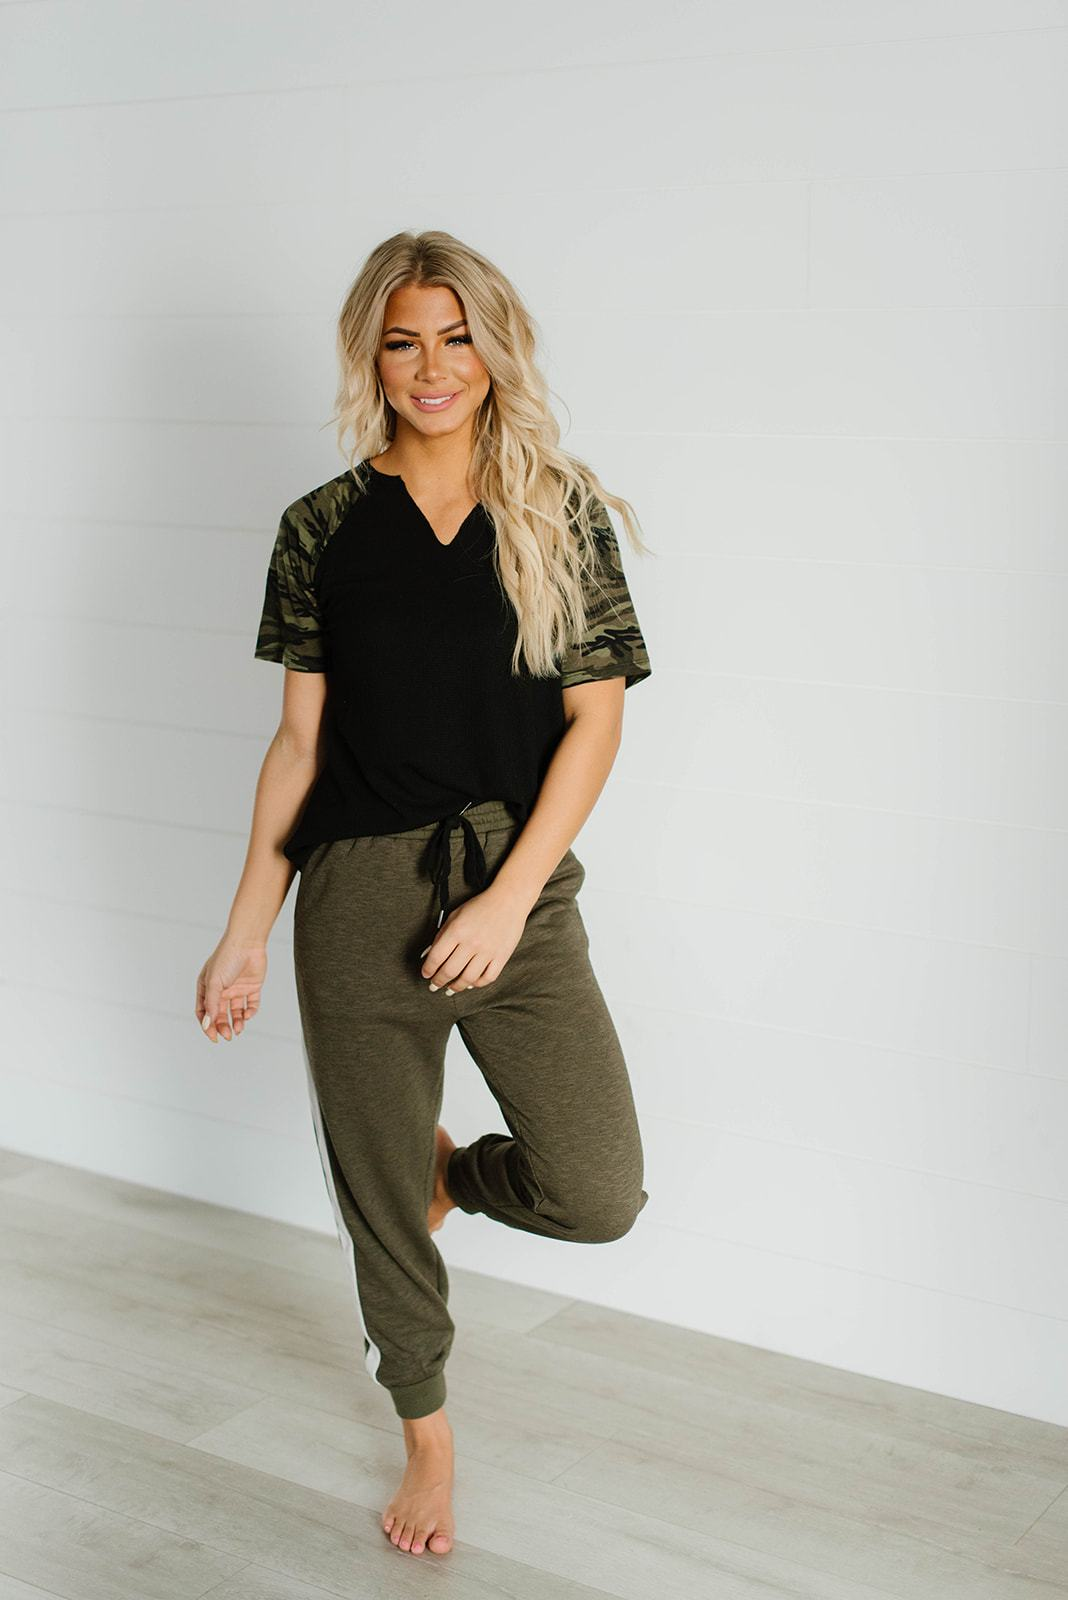 On The Run Camo Contrast Top, Clothing - Lola Cerina Boutique